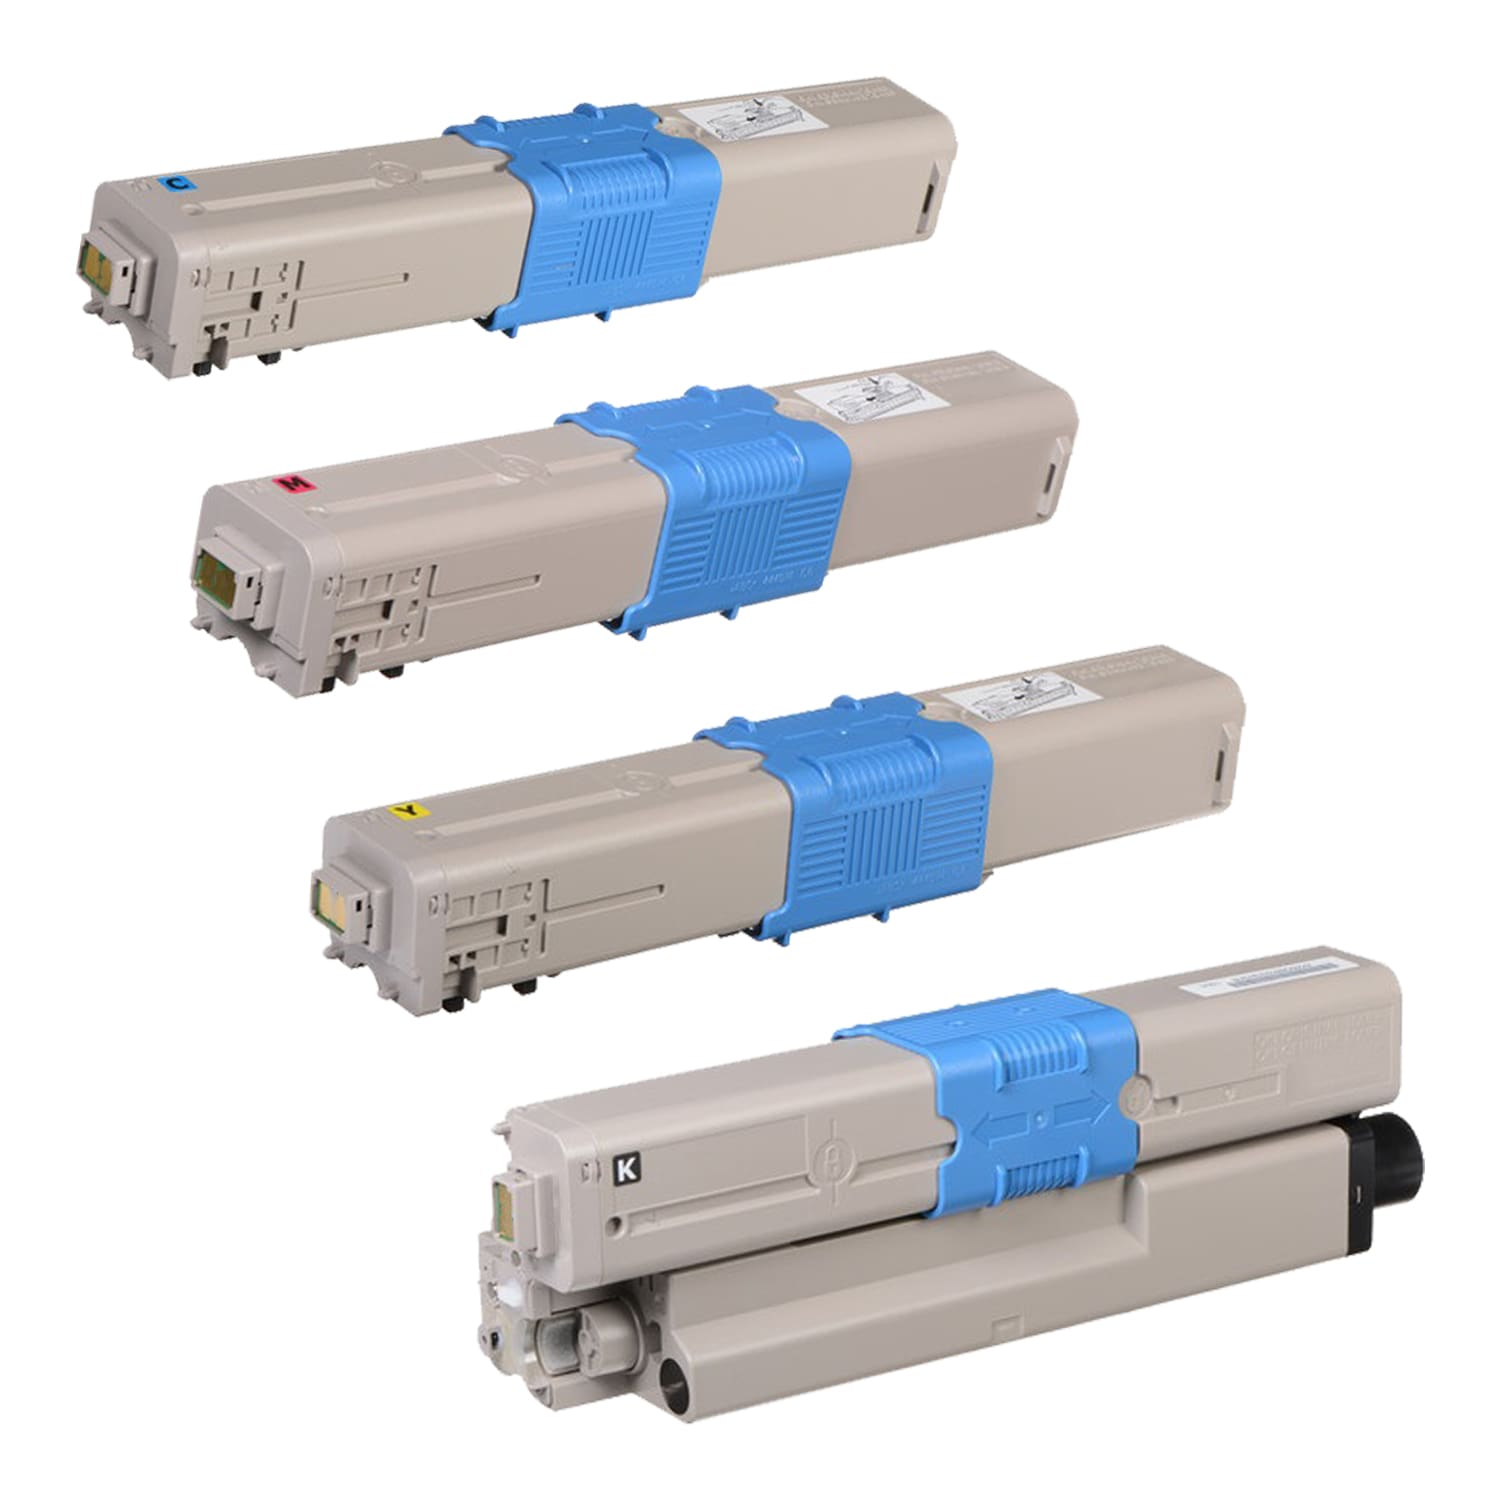 Compatible Okidata C531dn Toner High Capacity Pack - 4 Cartridges